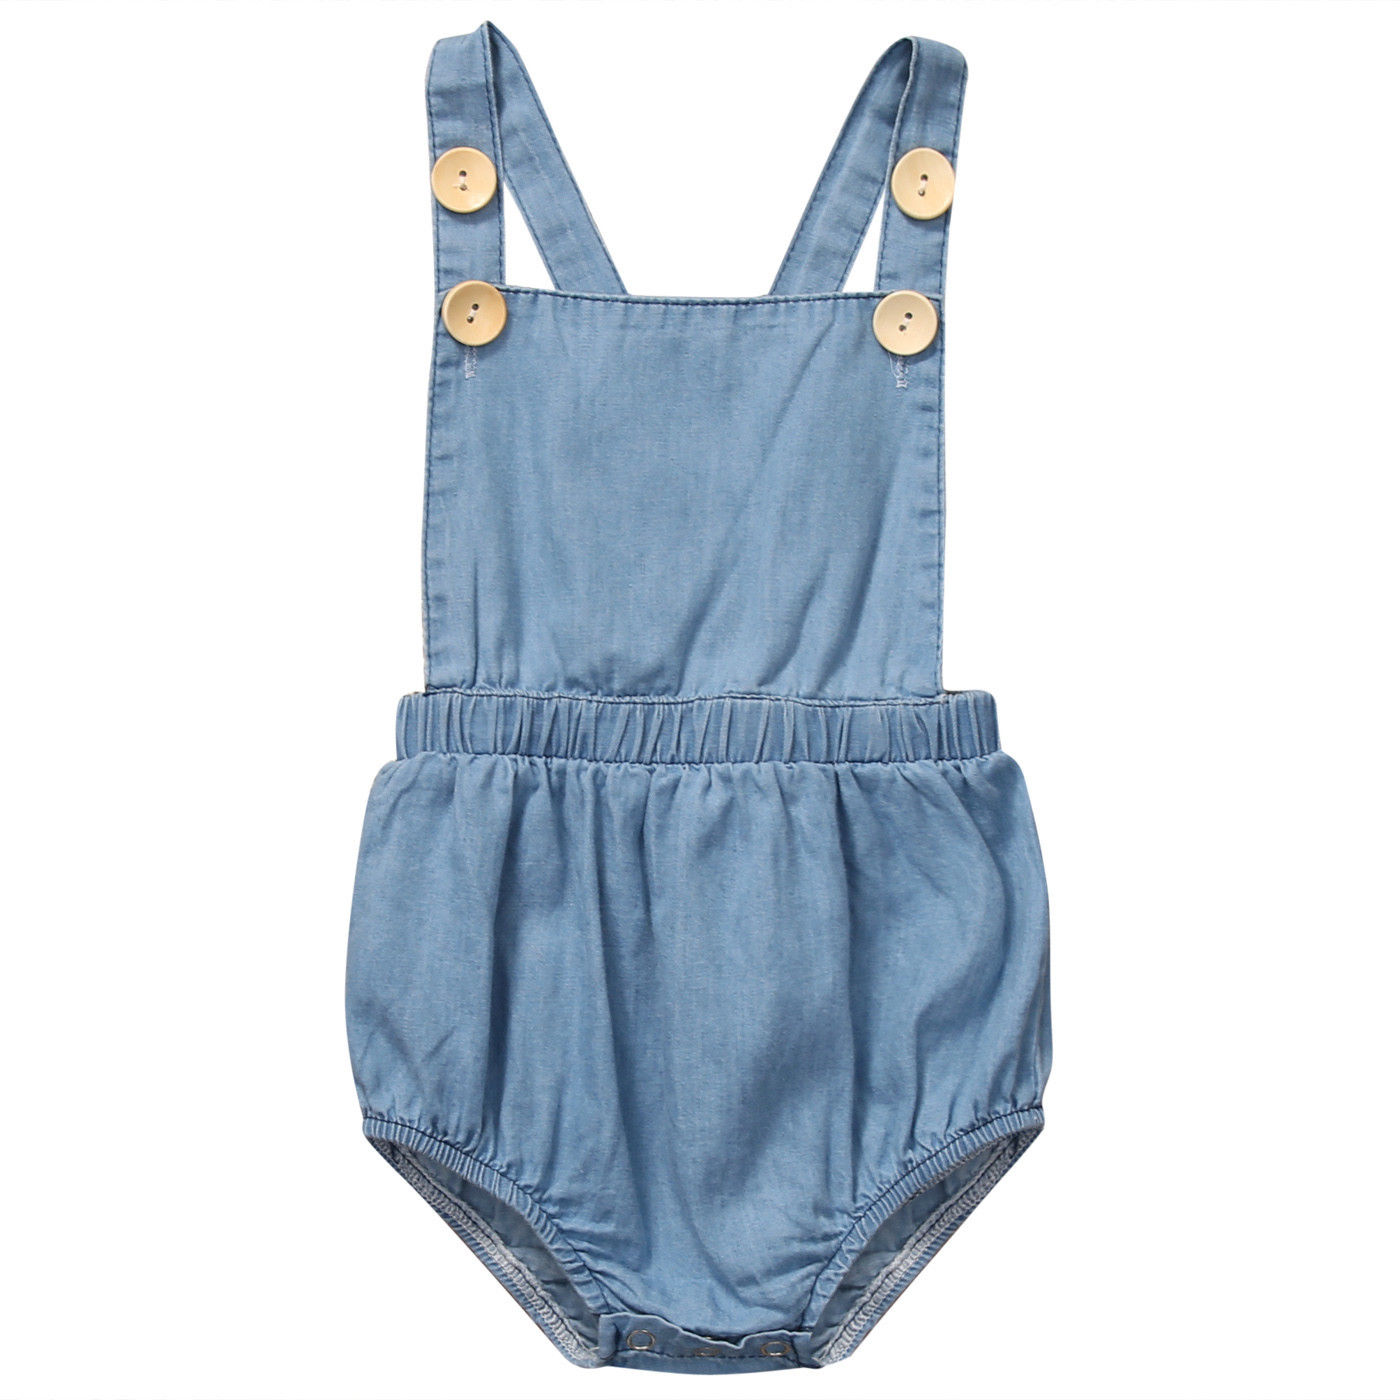 2017 Newborn Baby Rompers Girls Summer Clothes Sweet Baby Girls Kids Sleeveless Romper Kids Girls Blue Jumpsuit Clothes Outfits polka dot baby girls clothes backless flounced kid girls rompers jumpsuit playsuit one pieces outfits 0 18m blue pink purple